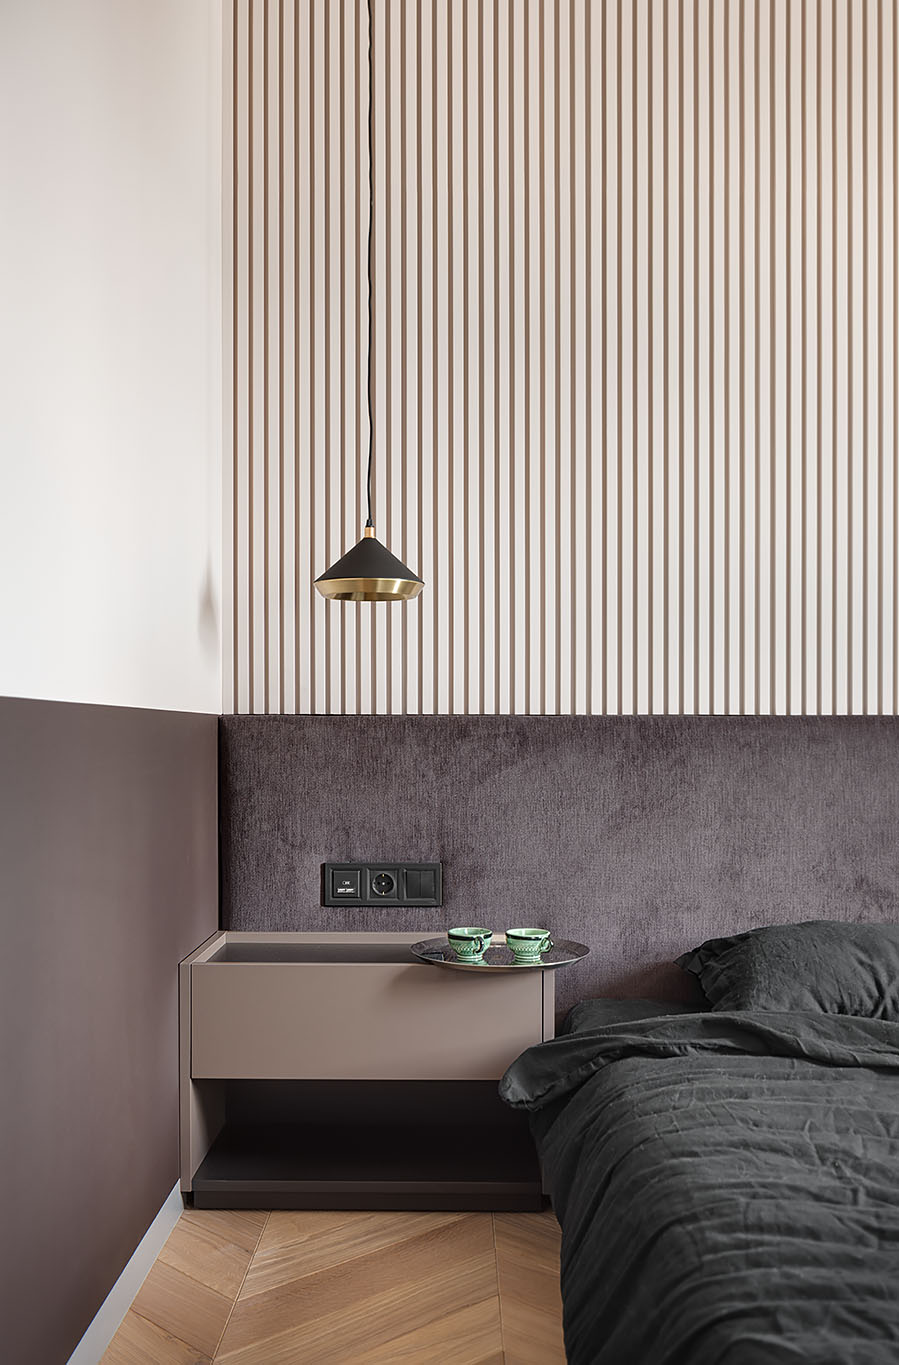 A two-tone bedroom includes different shades of chocolate and beige.